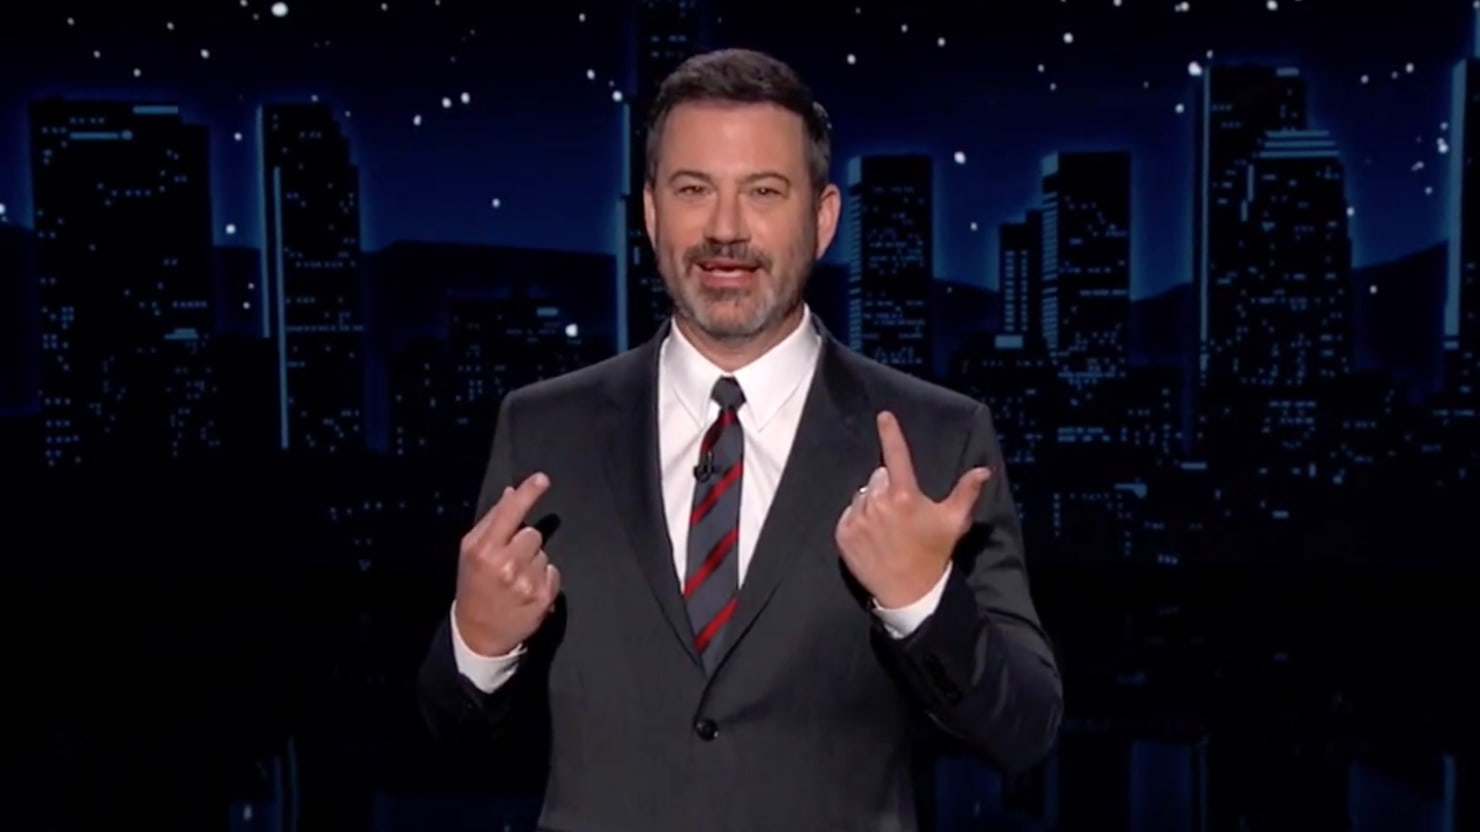 Jimmy Kimmel Reveals the Real Reason GOP 'Can't Wait' on SCOTUS Seat